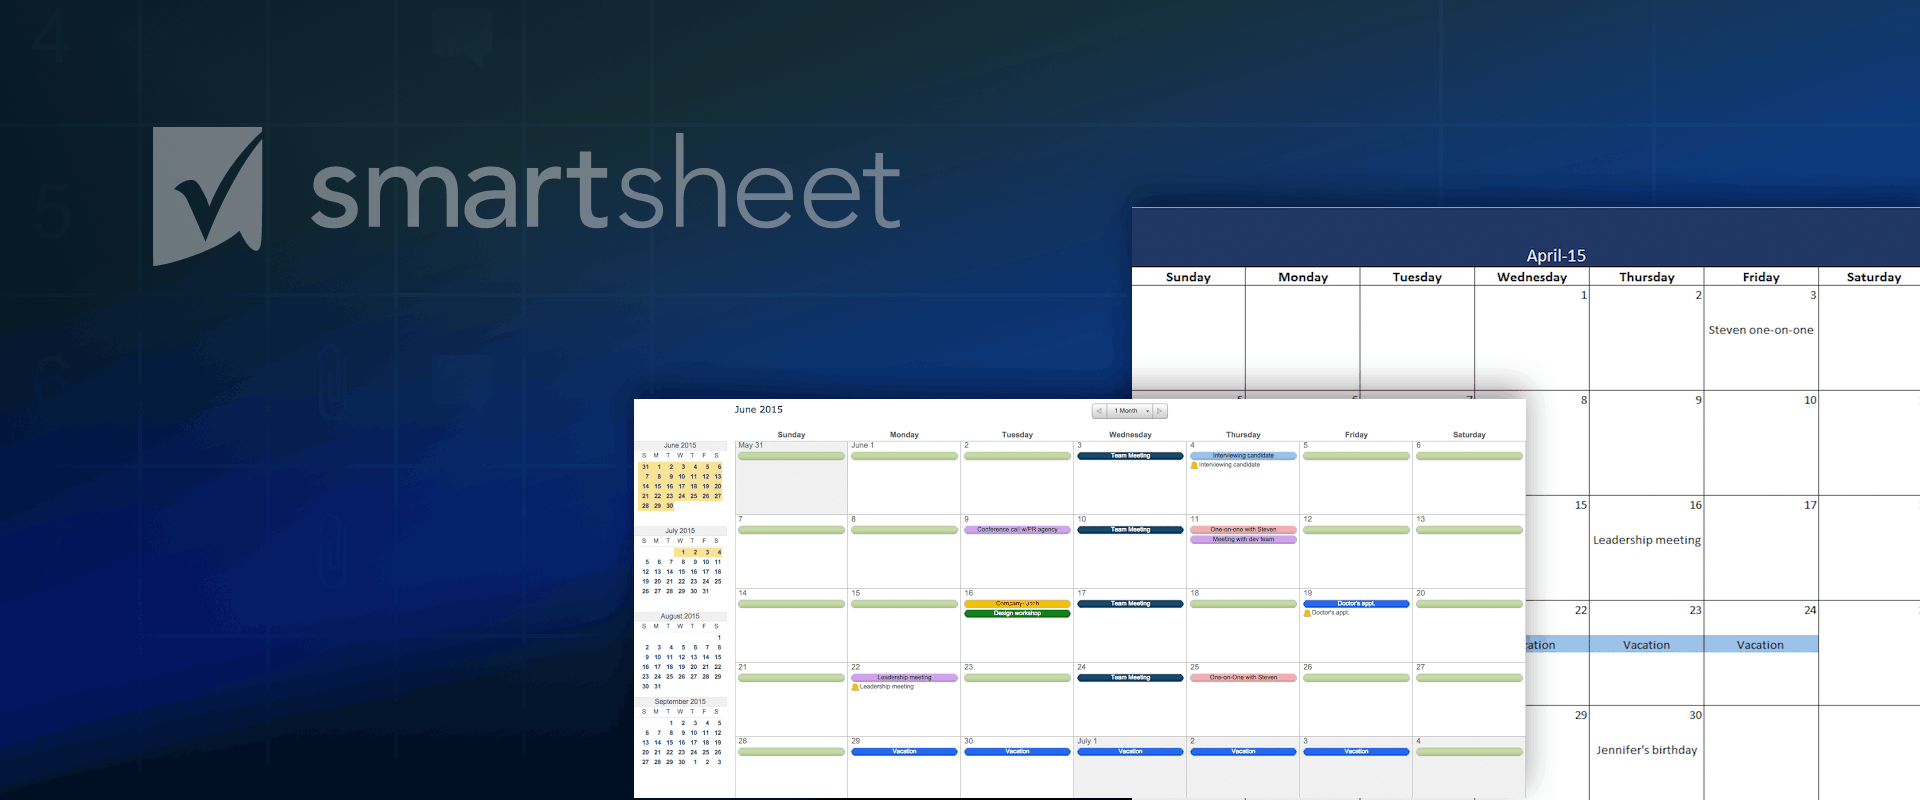 Ediblewildsus  Surprising Make A  Calendar In Excel Includes Free Template With Fascinating Vba To Export Access Query To Excel Besides Weekday In Excel Furthermore Create Heatmap In Excel With Beauteous Non Profit Balance Sheet Template Excel Also Excel Shortcut Merge Cells In Addition Excel Vba Activate Workbook And How To Download Excel For Free As Well As How To Use The Lookup Function In Excel Additionally Excel Heating And Cooling Harrisonburg From Smartsheetcom With Ediblewildsus  Fascinating Make A  Calendar In Excel Includes Free Template With Beauteous Vba To Export Access Query To Excel Besides Weekday In Excel Furthermore Create Heatmap In Excel And Surprising Non Profit Balance Sheet Template Excel Also Excel Shortcut Merge Cells In Addition Excel Vba Activate Workbook From Smartsheetcom